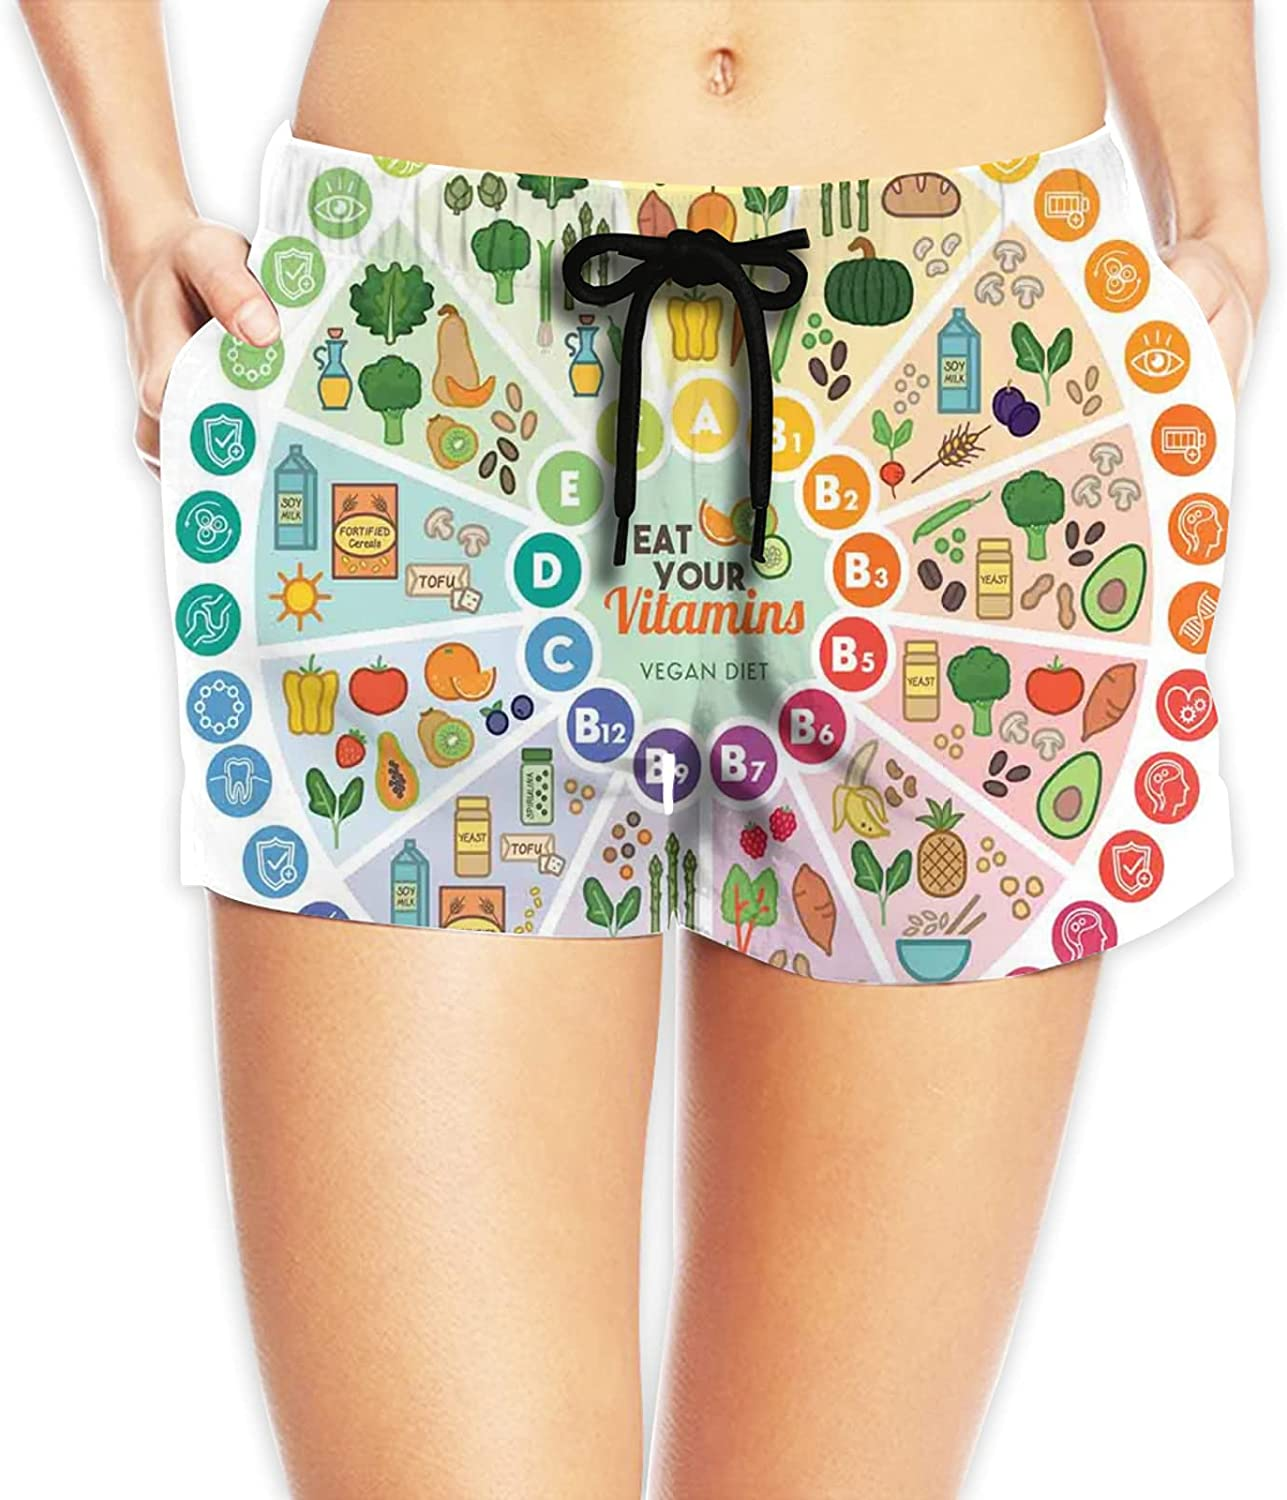 Women's Swim Shorts Sport Board Shorts Swimsuit Bottom,Vitamin Vegan Food Sources and Functions Rainbow Wheel Chart with Icons Healthcare XXL